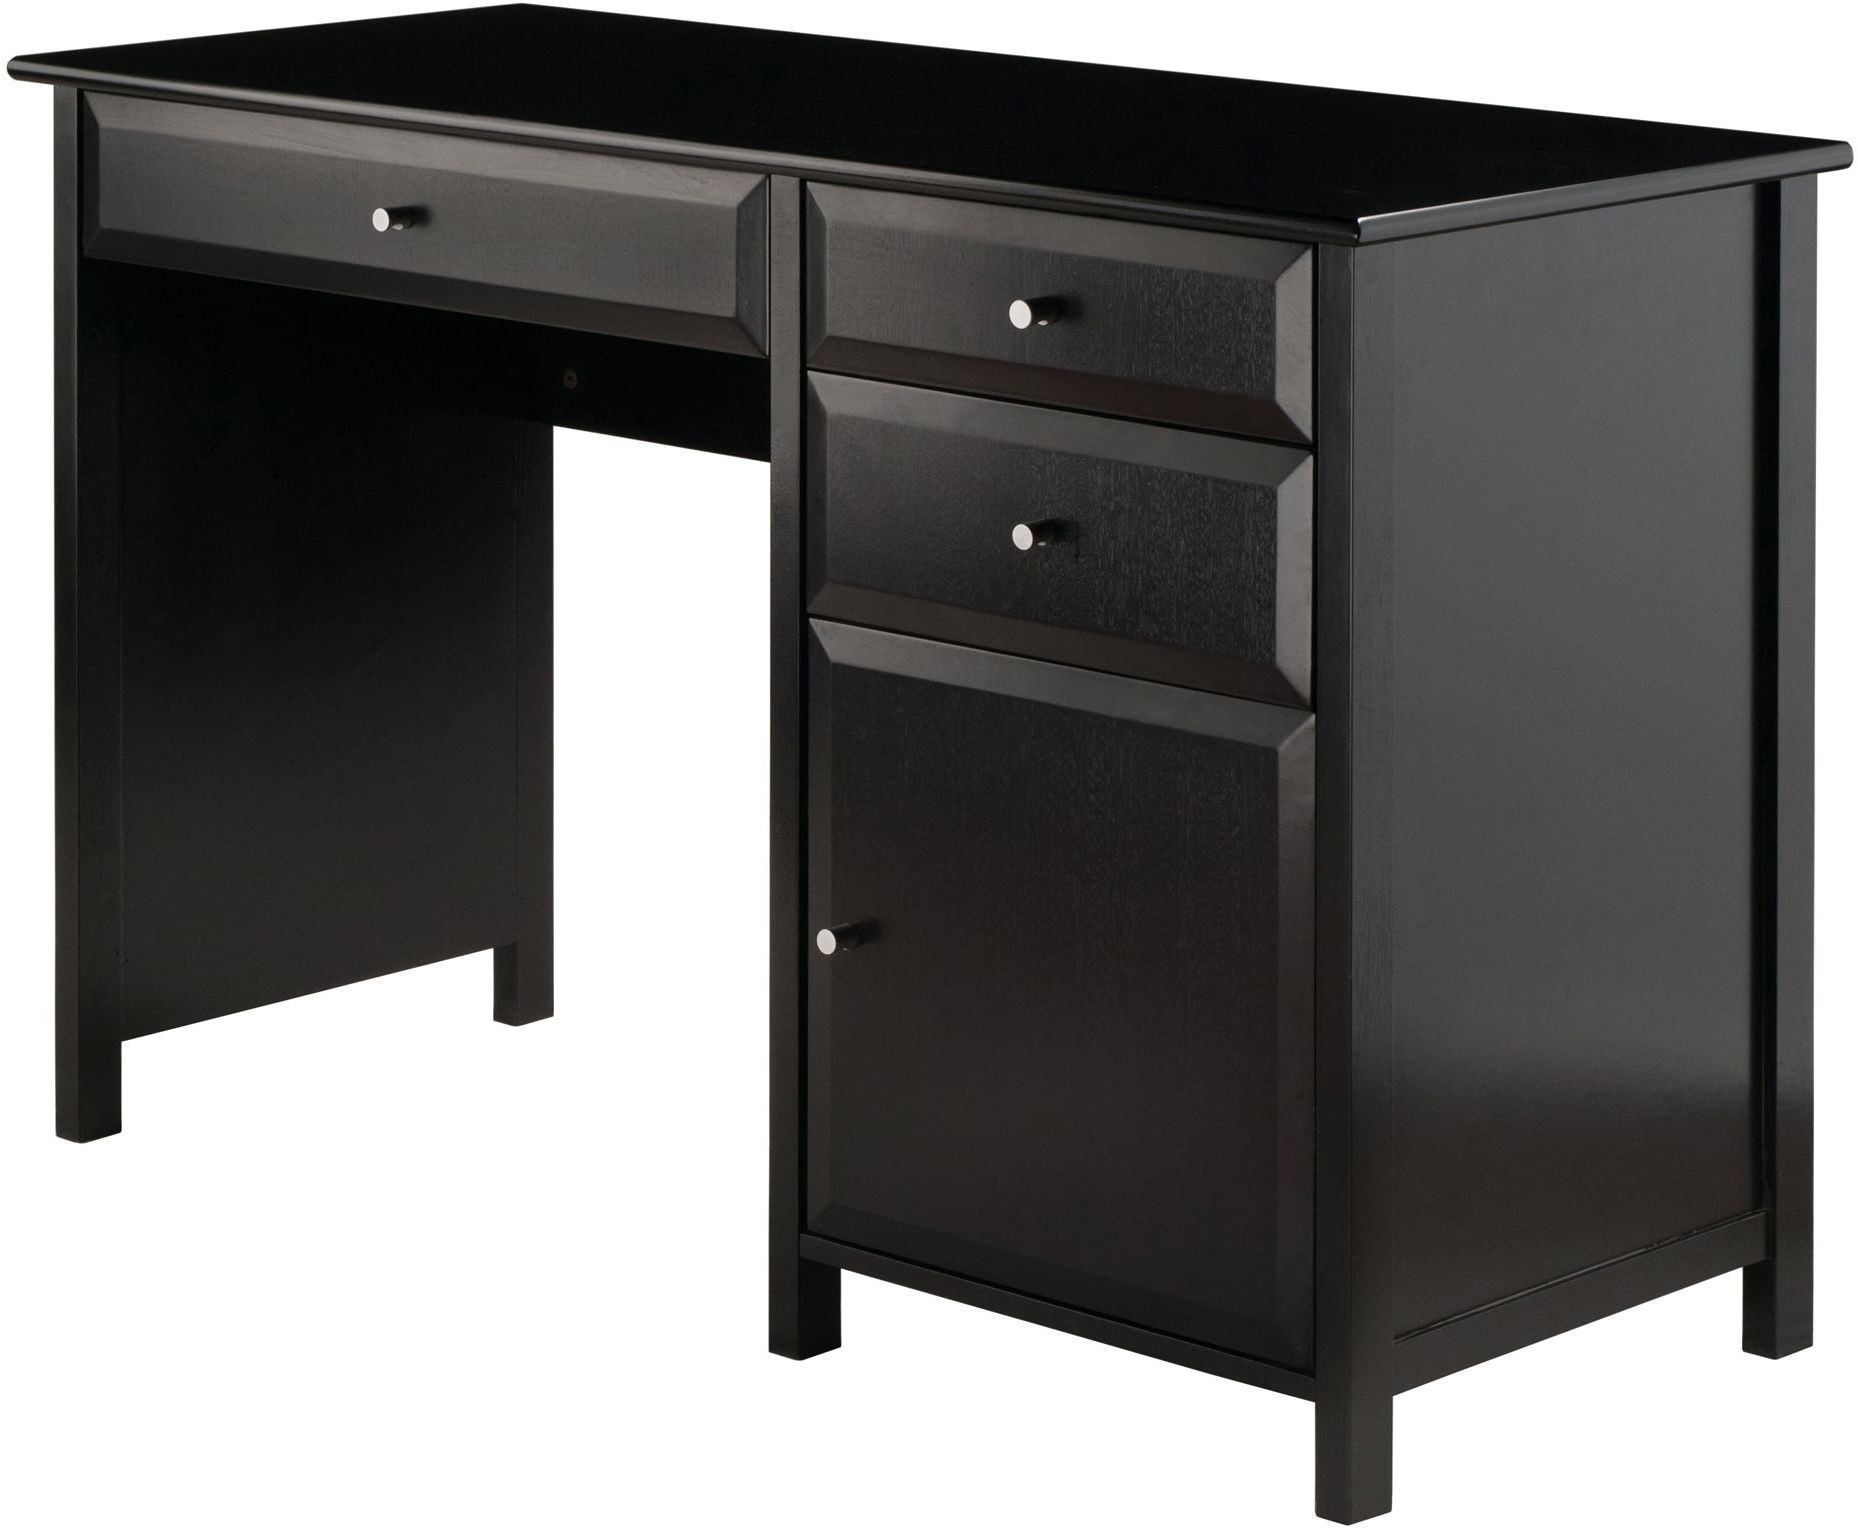 Delta Black Office Writing Desk from WinsomeWood  Coleman